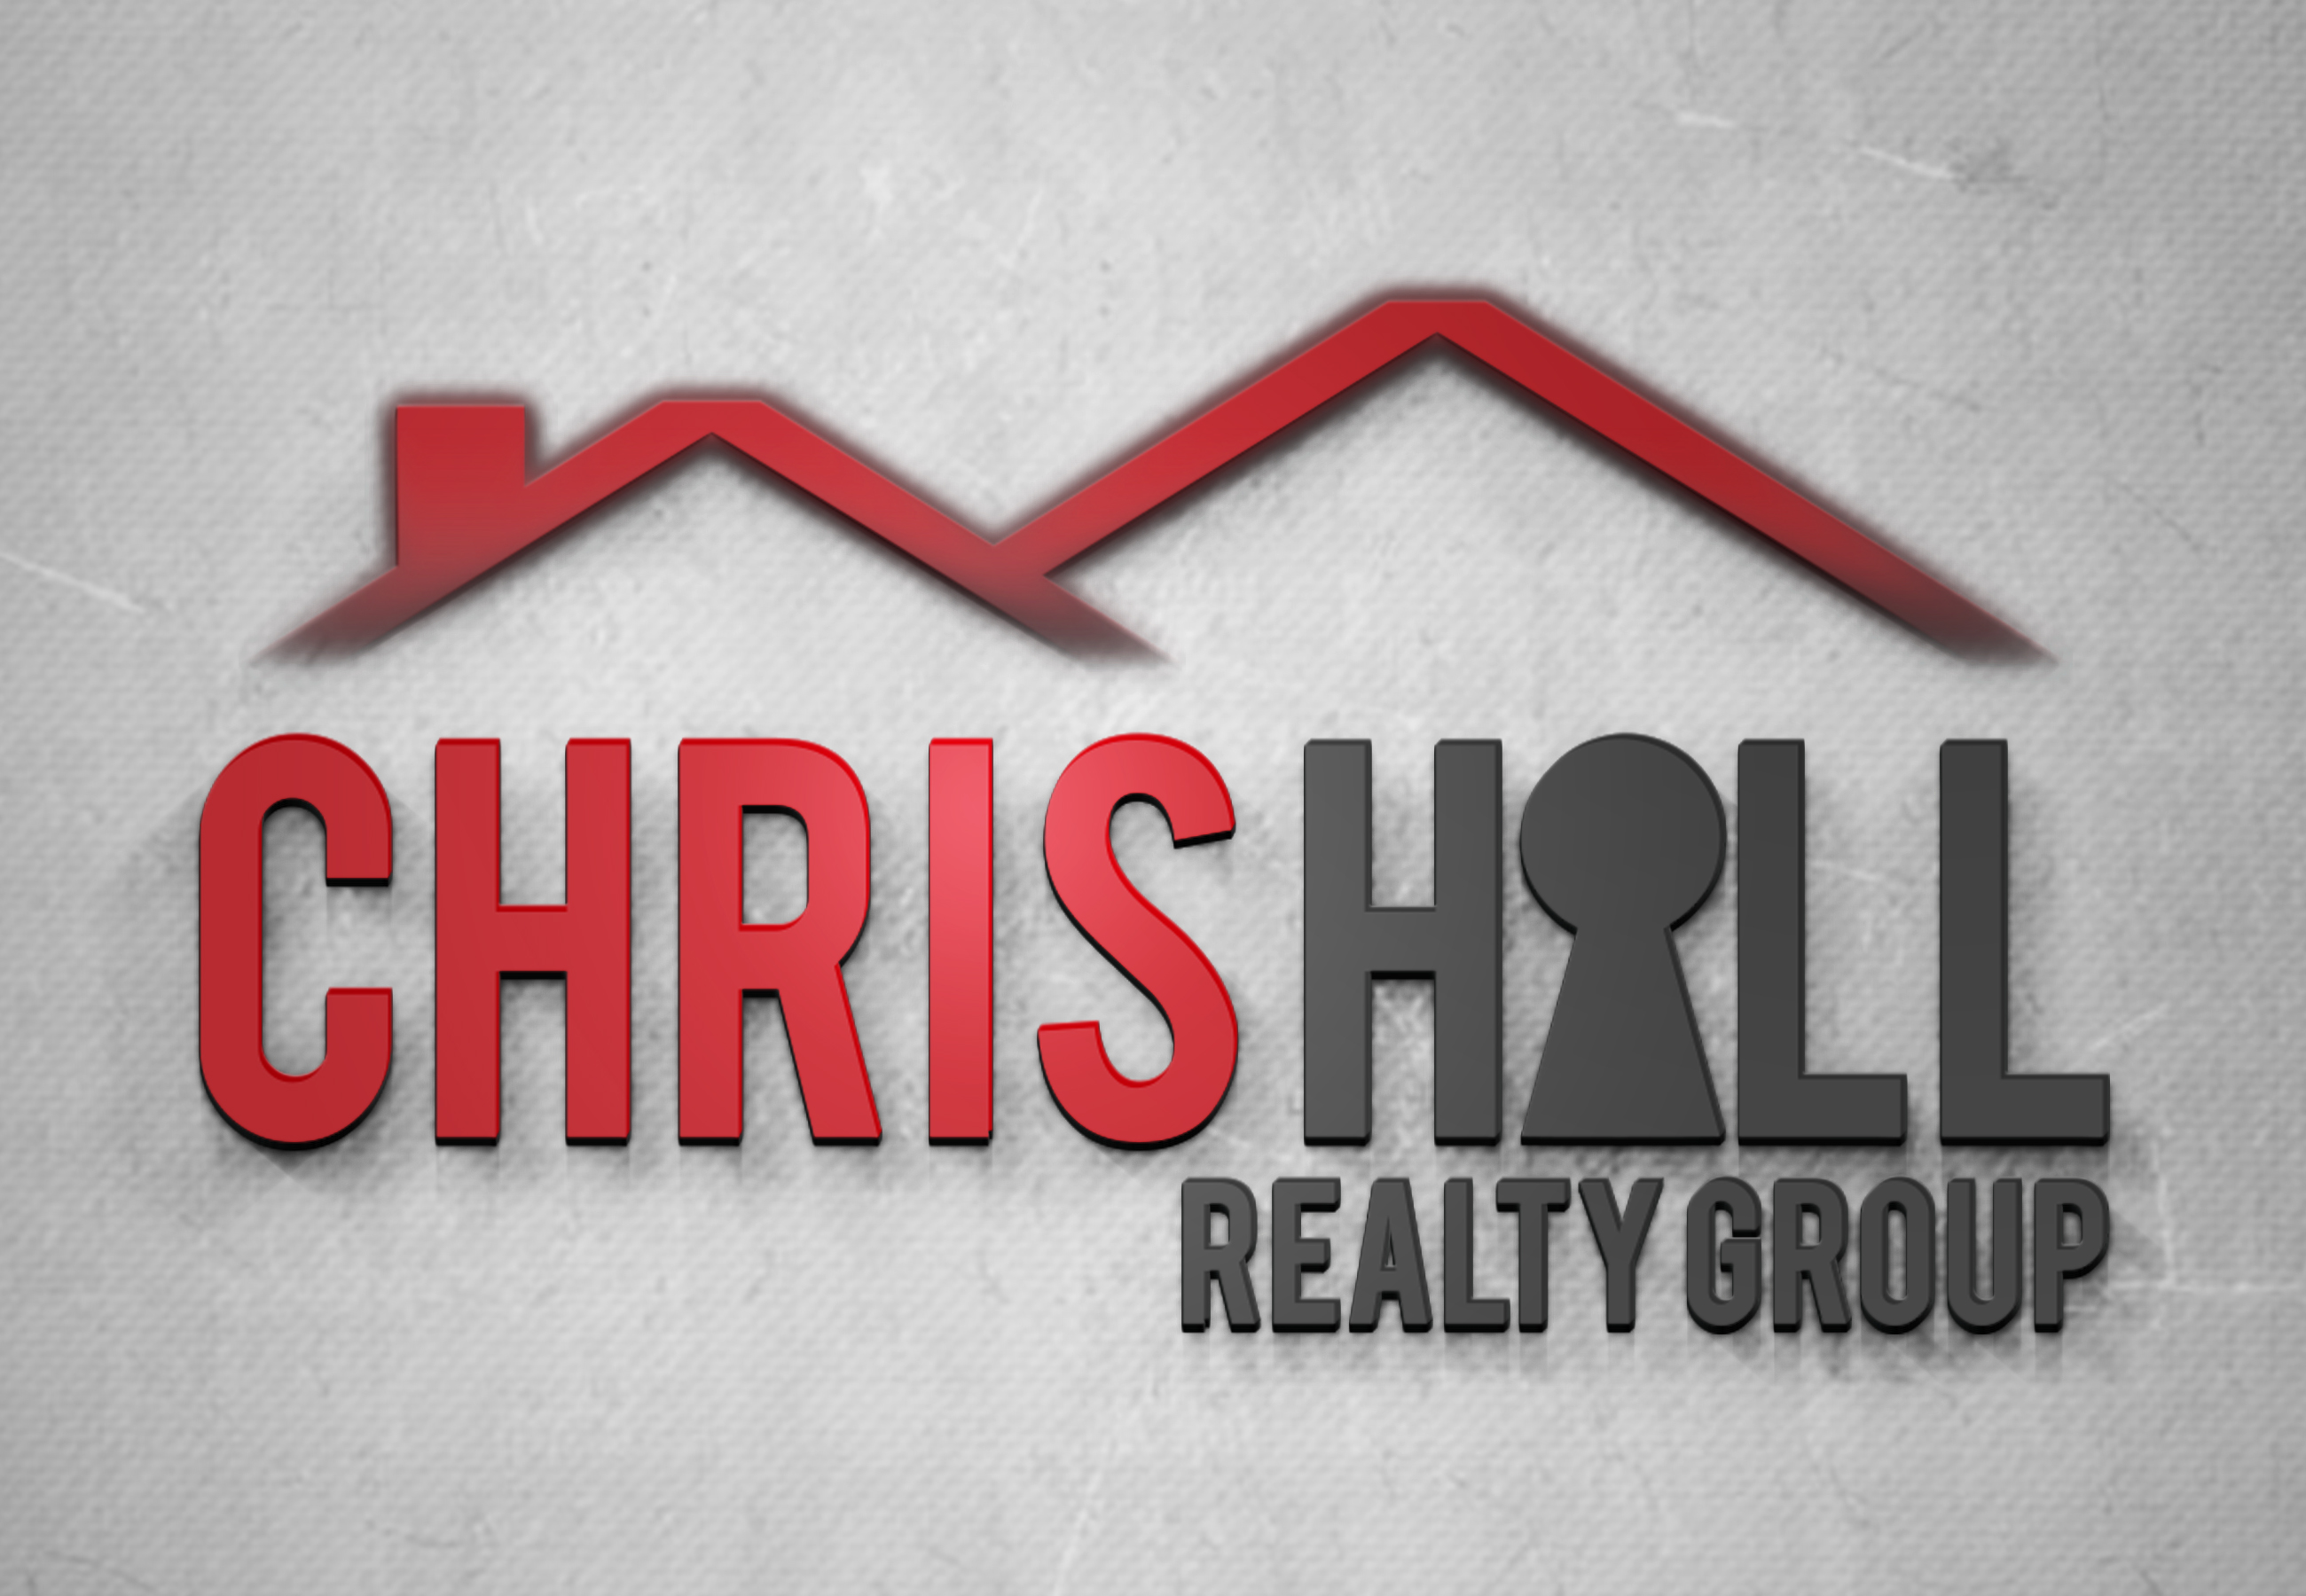 The Chris Hill Realty Group-KW St.Louis logo